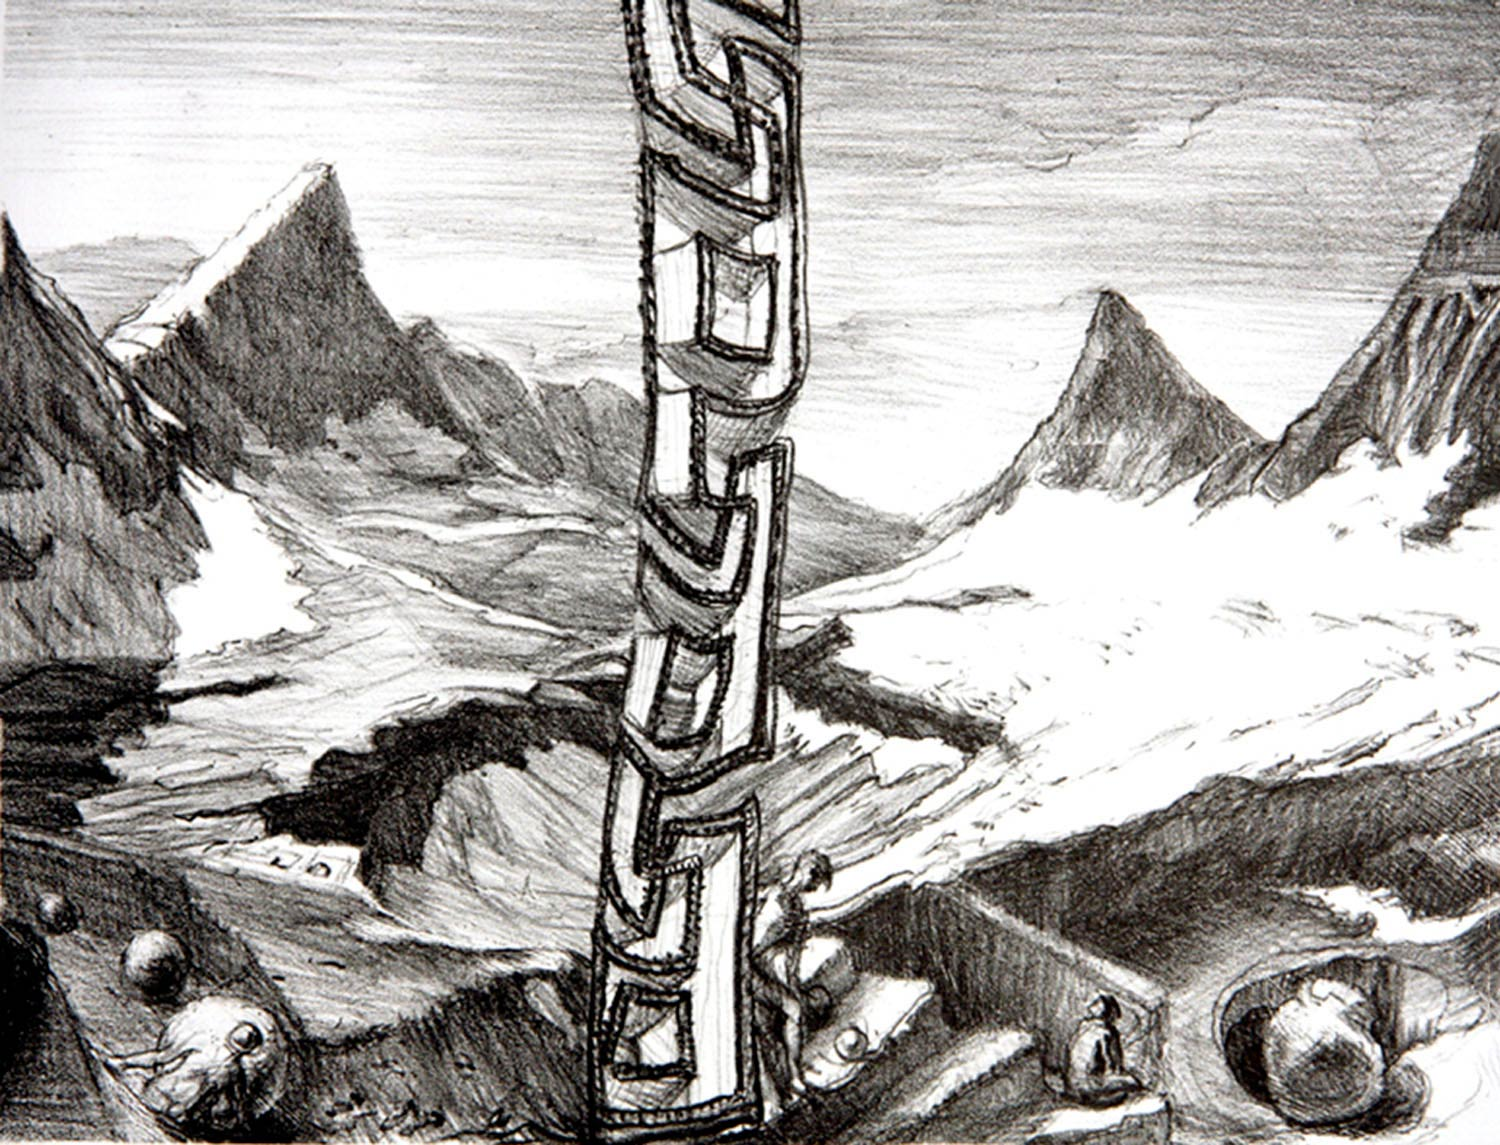 07 Glacier Loss litho 12 x 16 in 2010